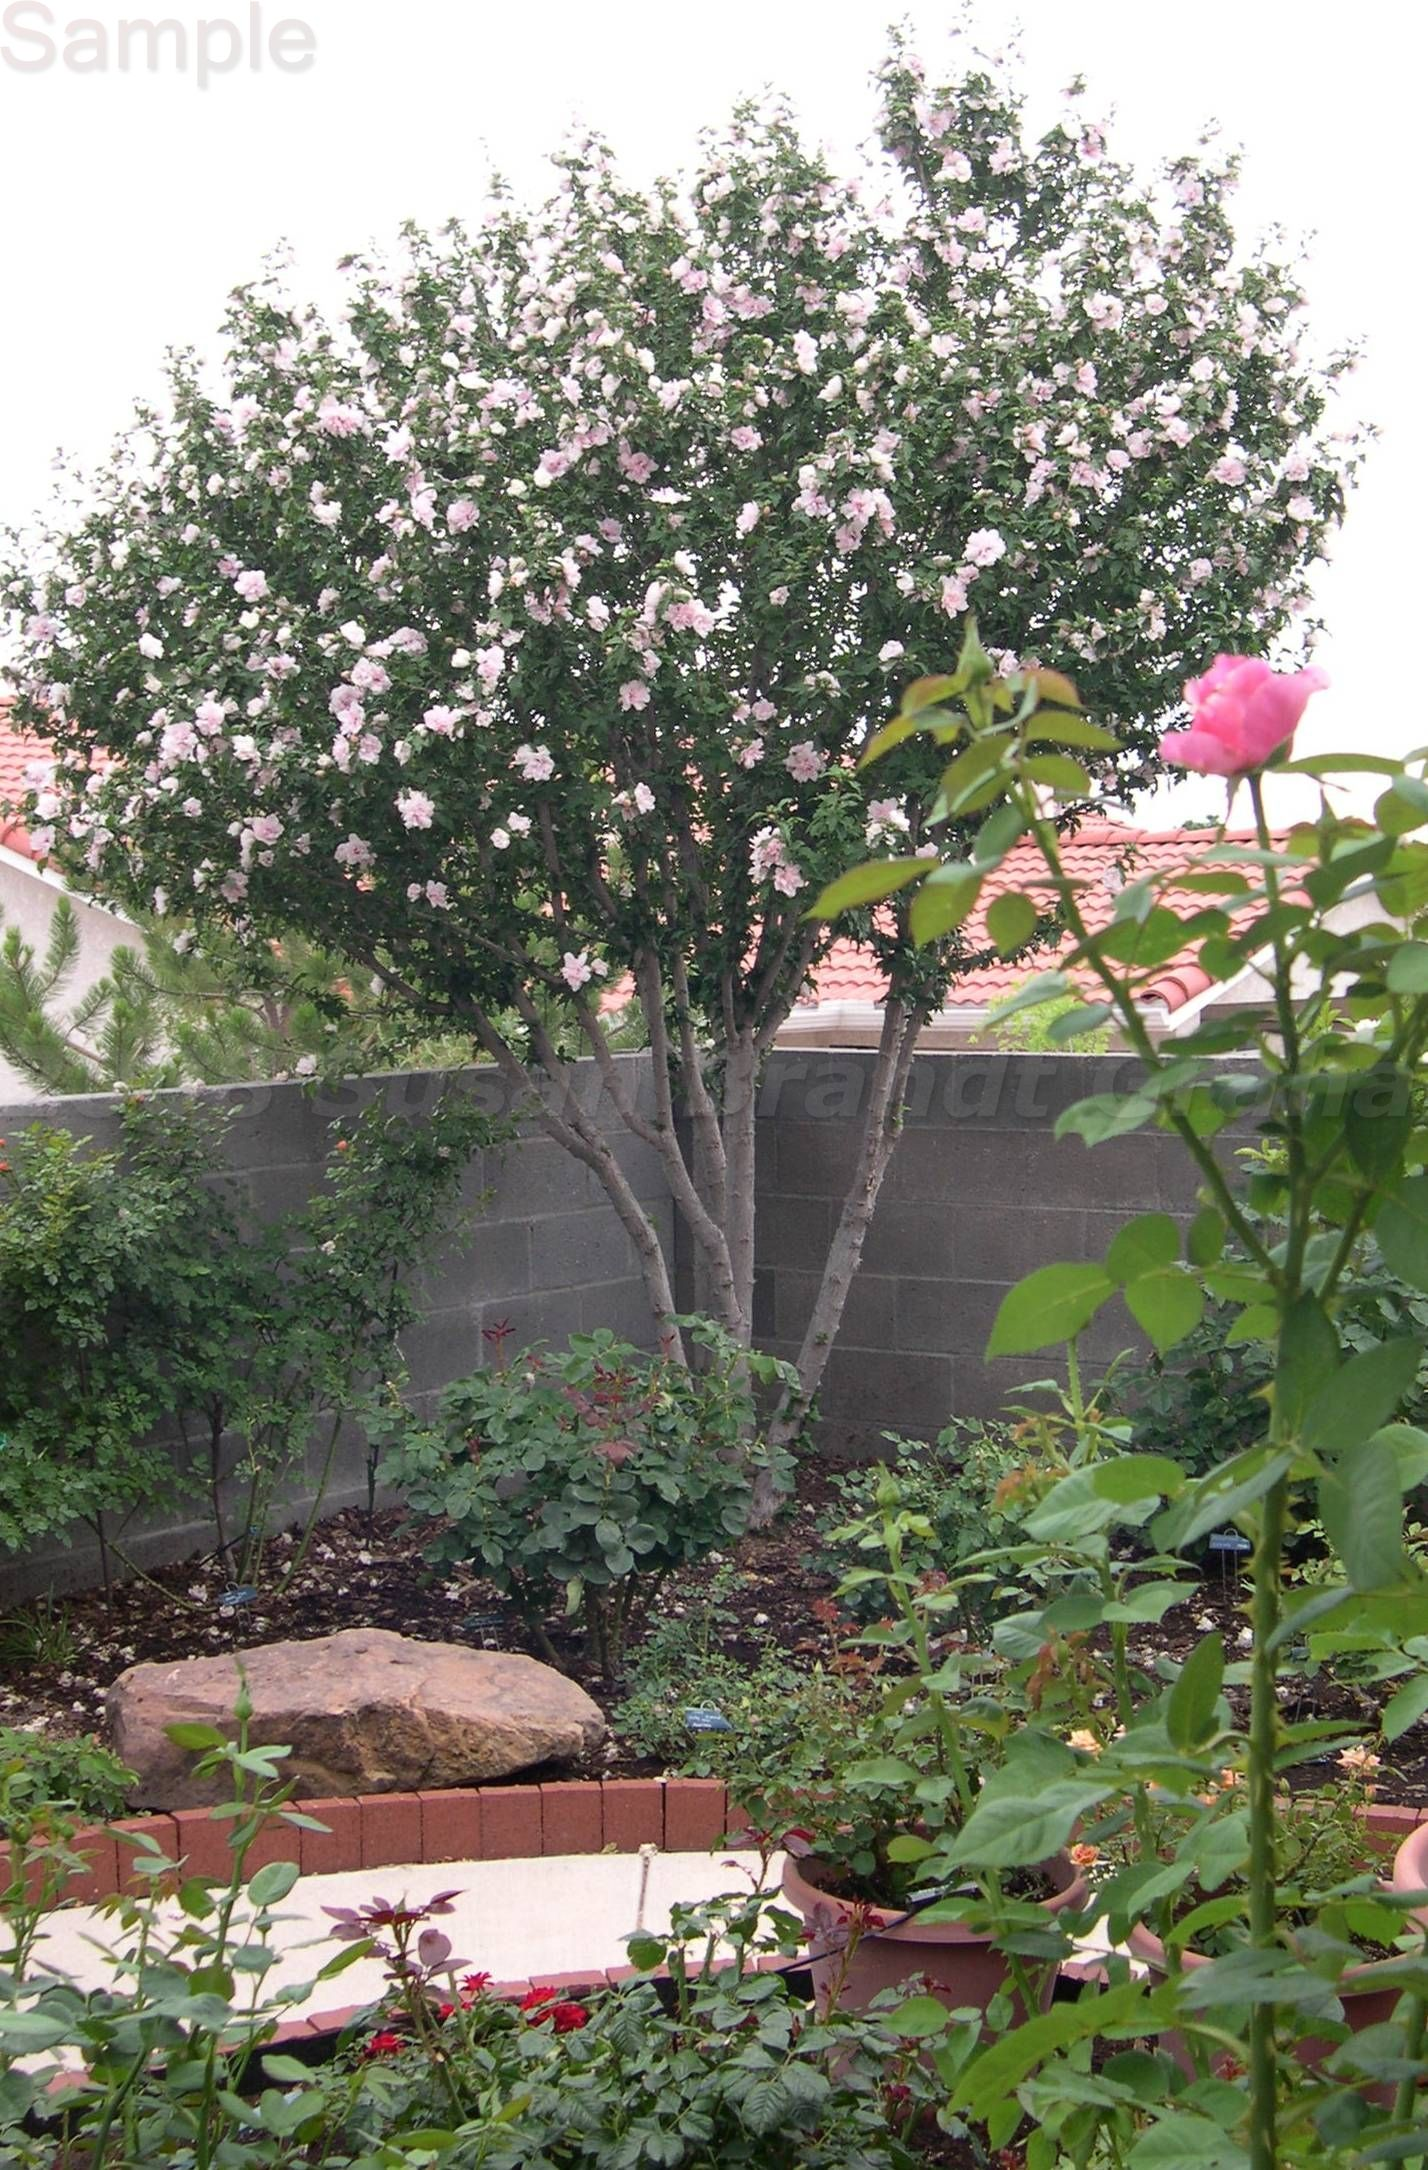 blushingbridejune2708001 Small garden trees Garden trees and